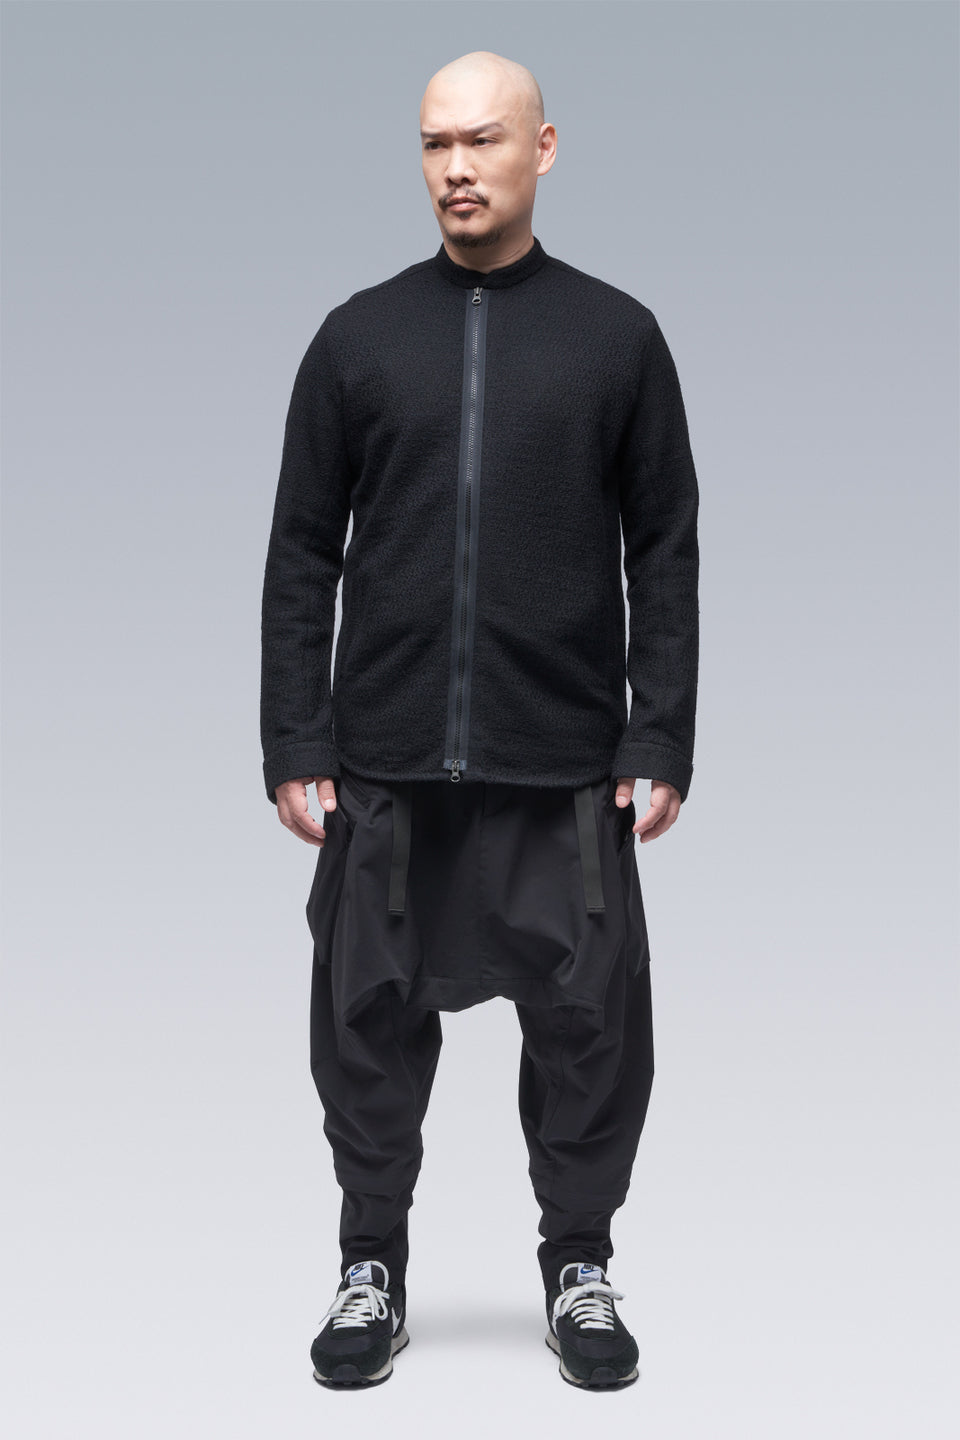 Acronym LA8-AK Cashllama Long Sleeve Zip Shirt Jacket Black